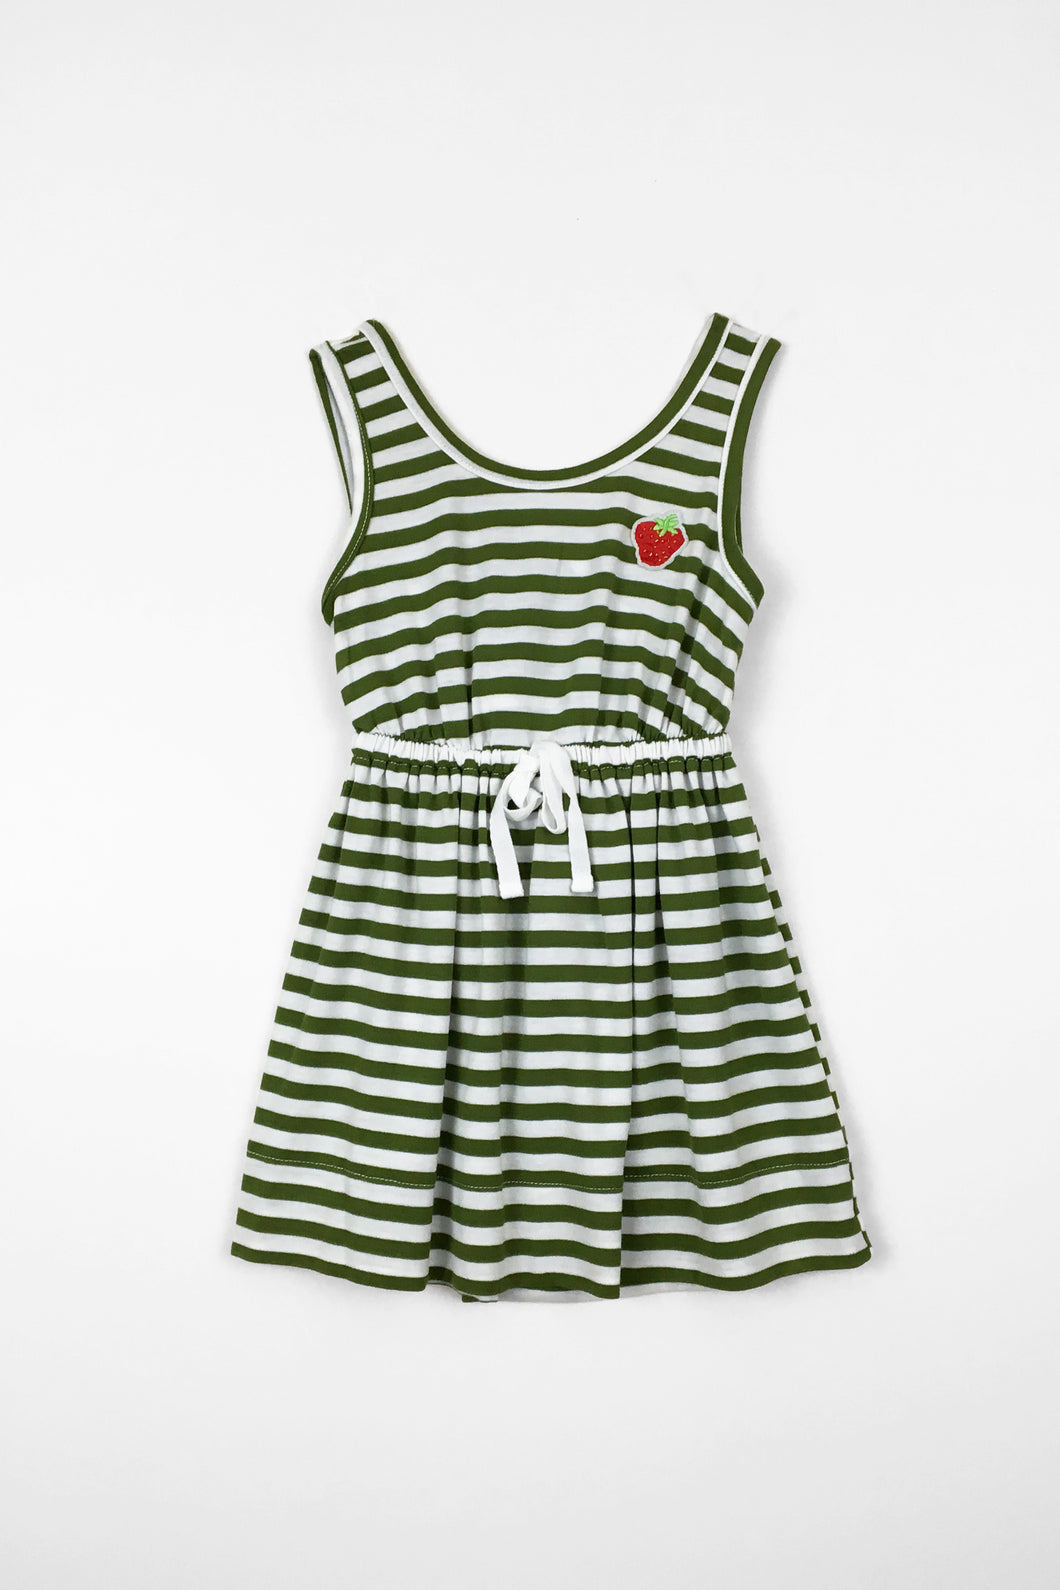 Strawberry fields dress - stripe